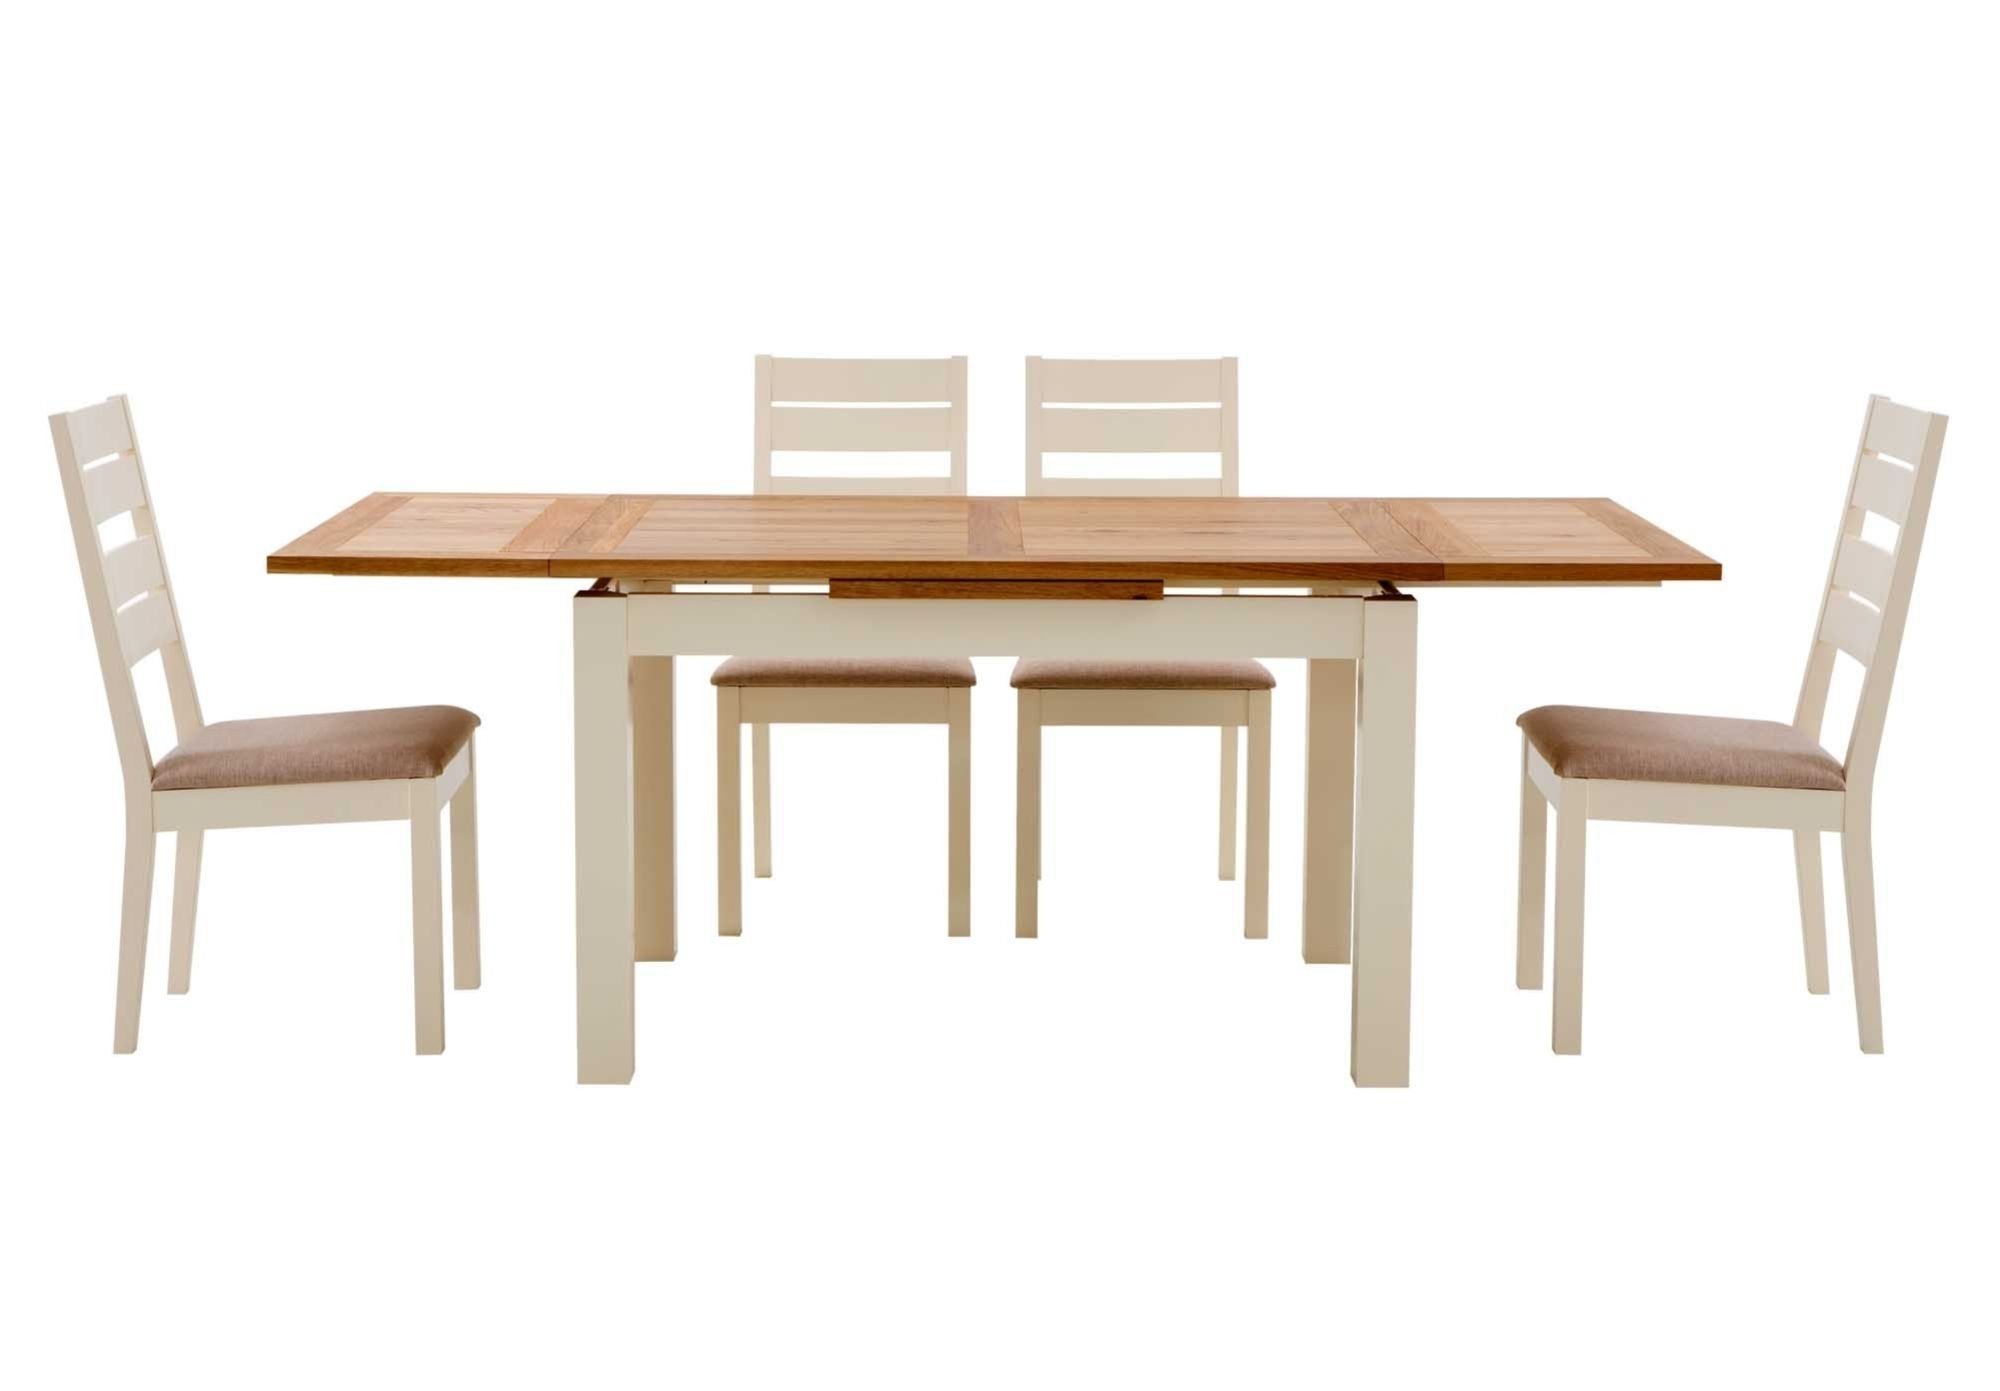 Most Recent Extendable Dining Table And 4 Chairs Within An Extending Dining Table Would Be Really Useful (View 16 of 25)